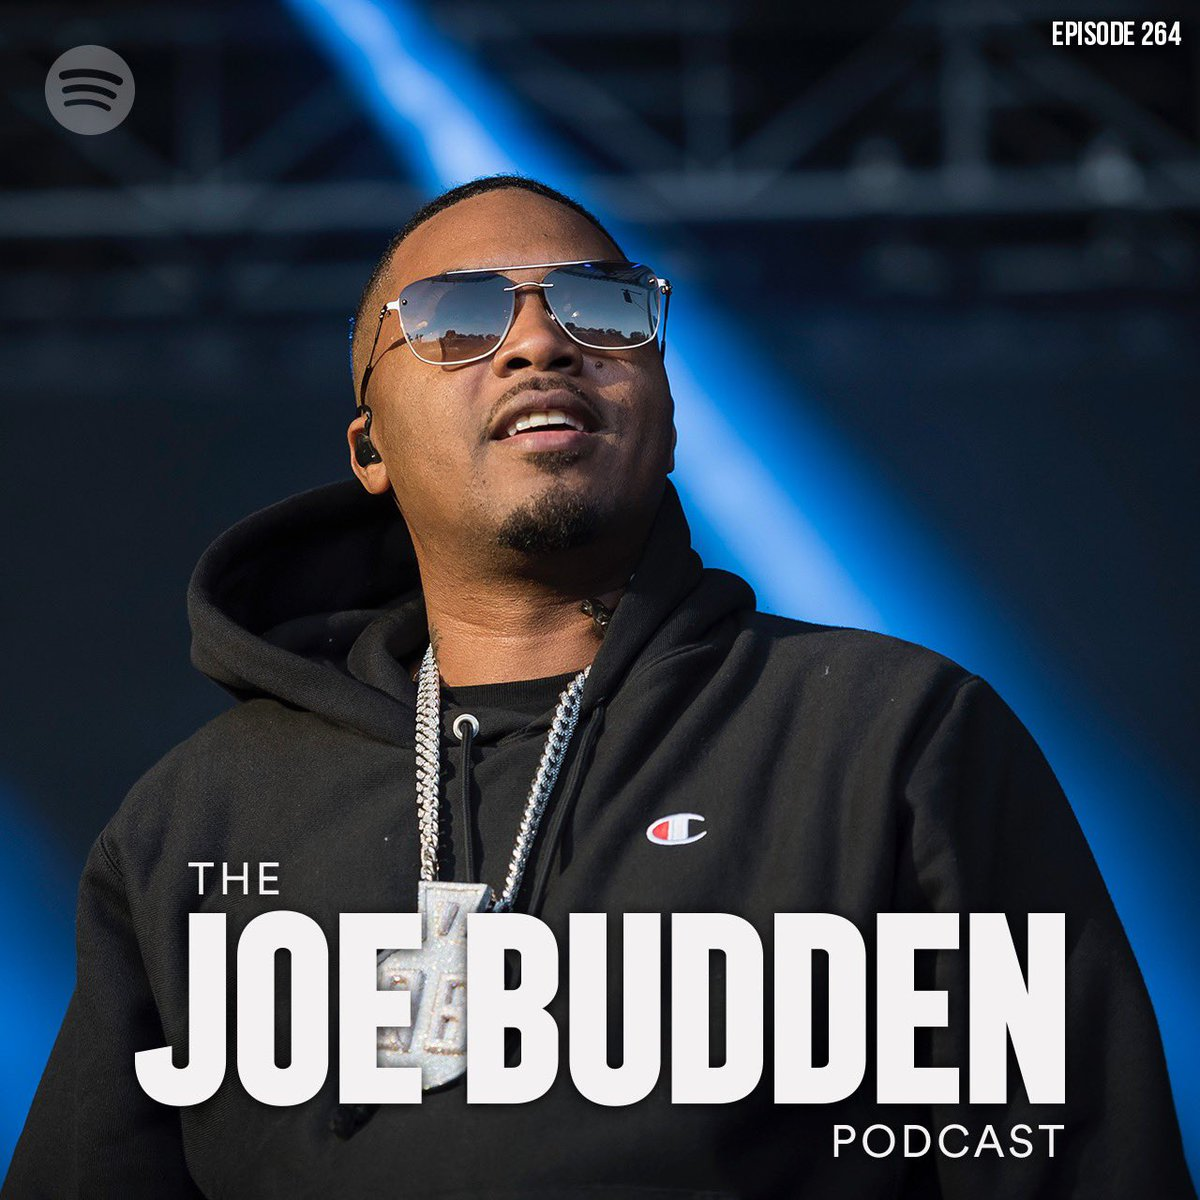 """The @JoeBudden Podcast Episode 264 """"Suns Out, Buns Out"""" is available now!  Stream exclusively on @Spotify  LISTEN HERE 🎧: https://open.spotify.com/episode/7FALTBSt40zuqcQEC23ReW?si=xDcE-gjNQg-vBretf7iNpw…"""